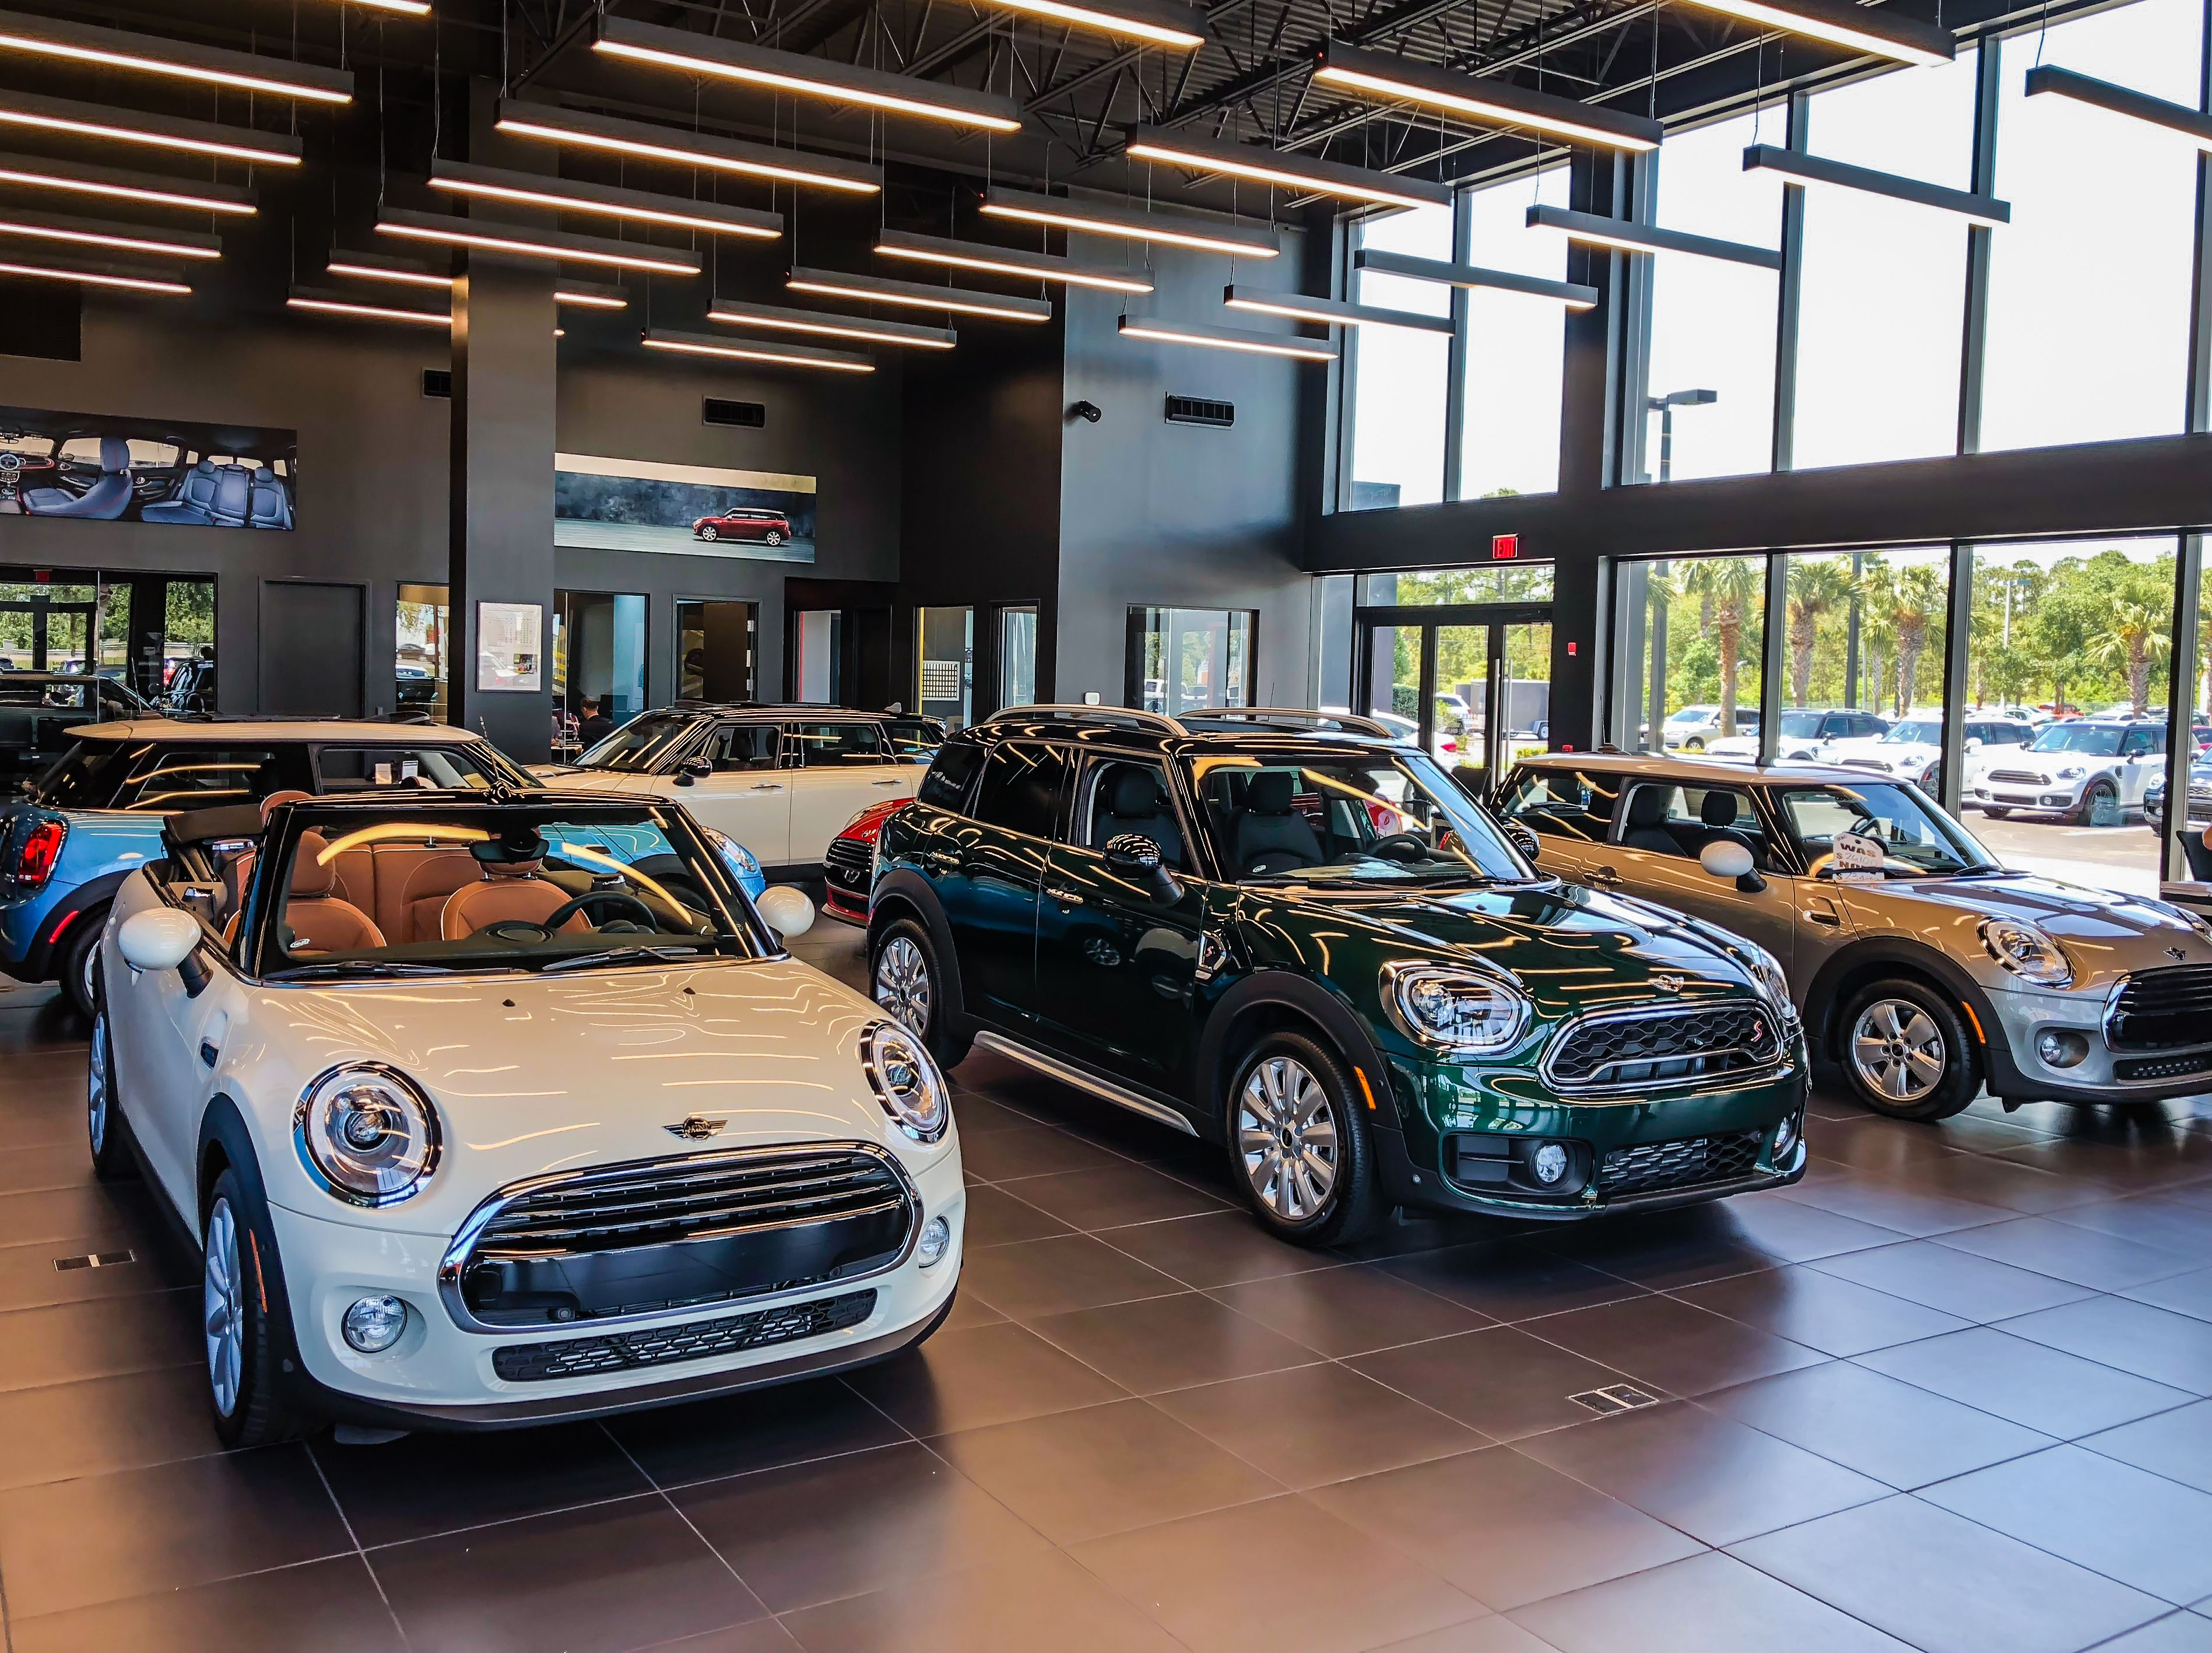 Our Team Member Andrew S Snapped These Great Photos Of Our Showroom Here Mini Of Daytonabeach See A Mini Yo Mini Clubman Mini Convertible Daytona Beach